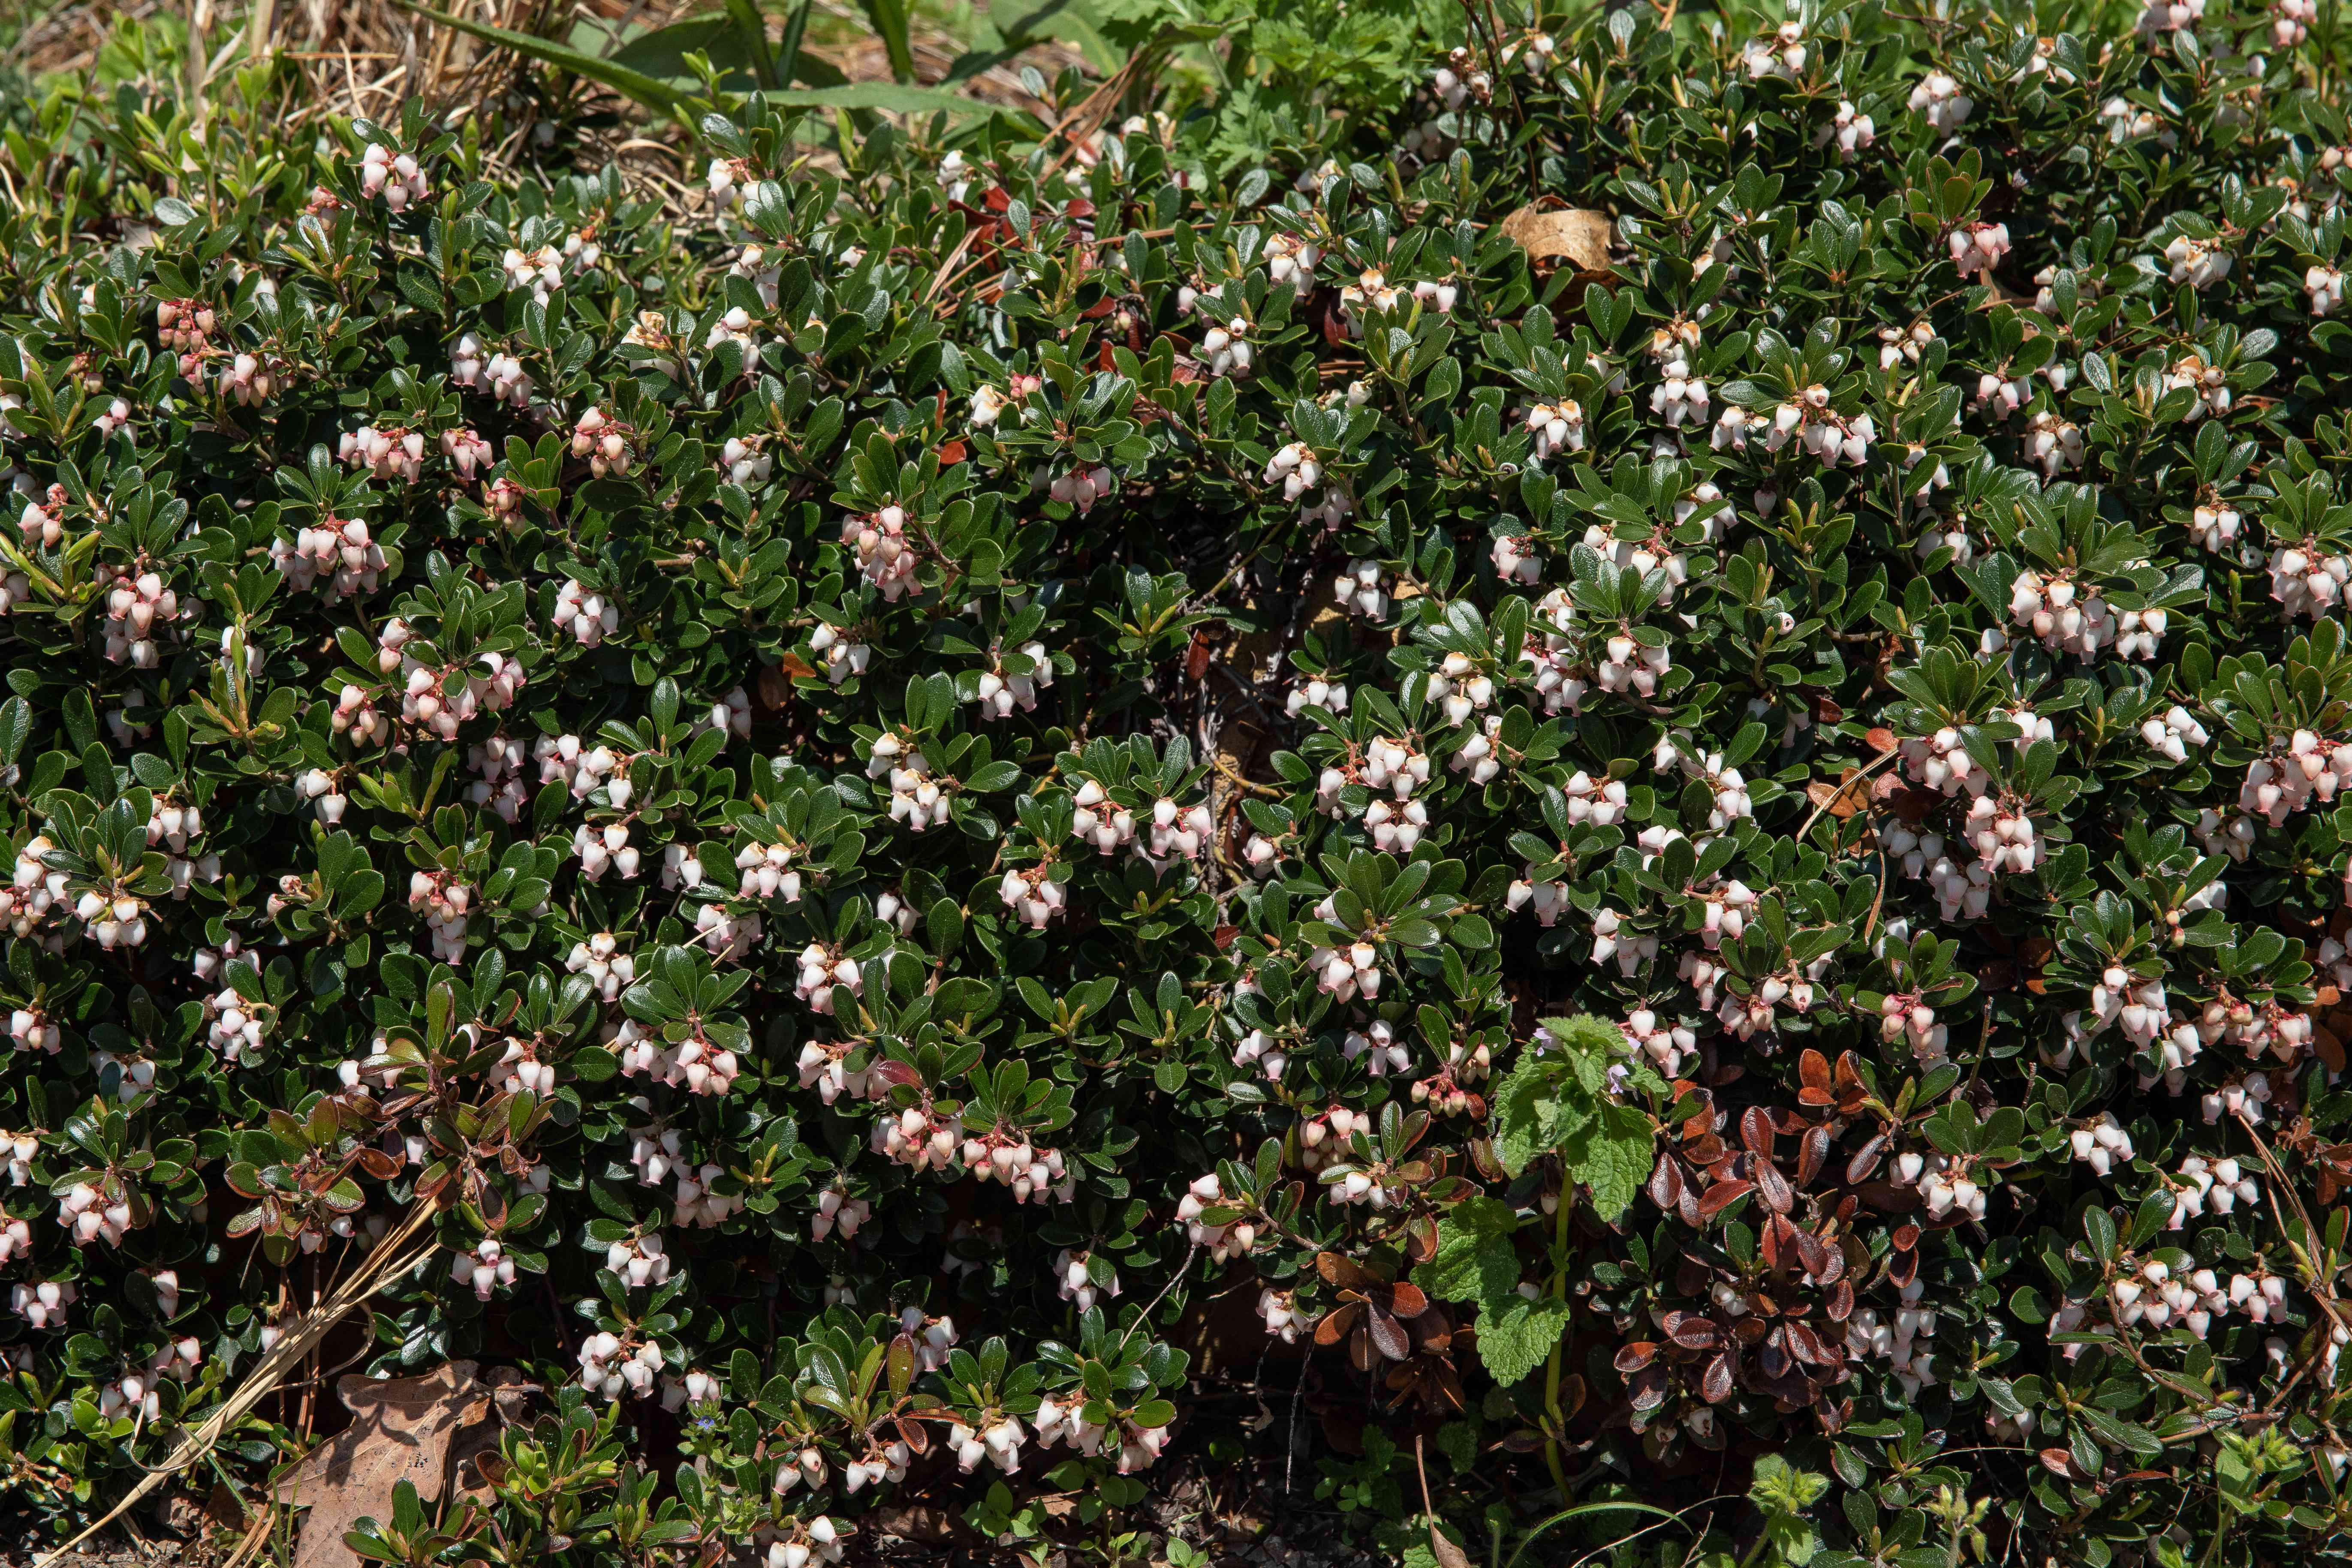 Bearberry sub-shrub with small white flowers in sunlight